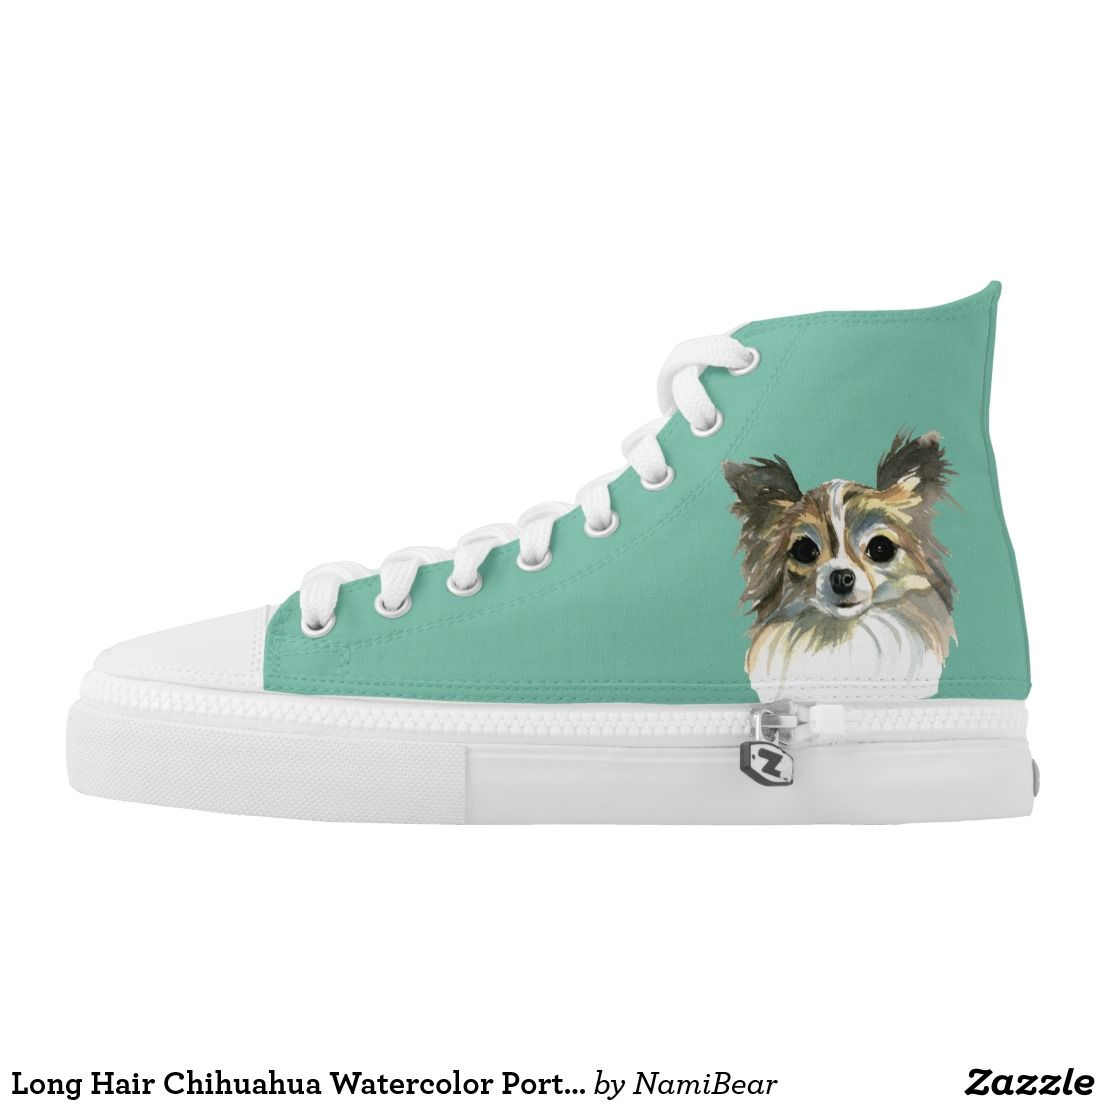 Long Hair Chihuahua Watercolor Portrait High Top Sneakers. This is a detailed watercolor painting of a face of a long hair chihuahua dog. It has light and dark brown fur and white chest.